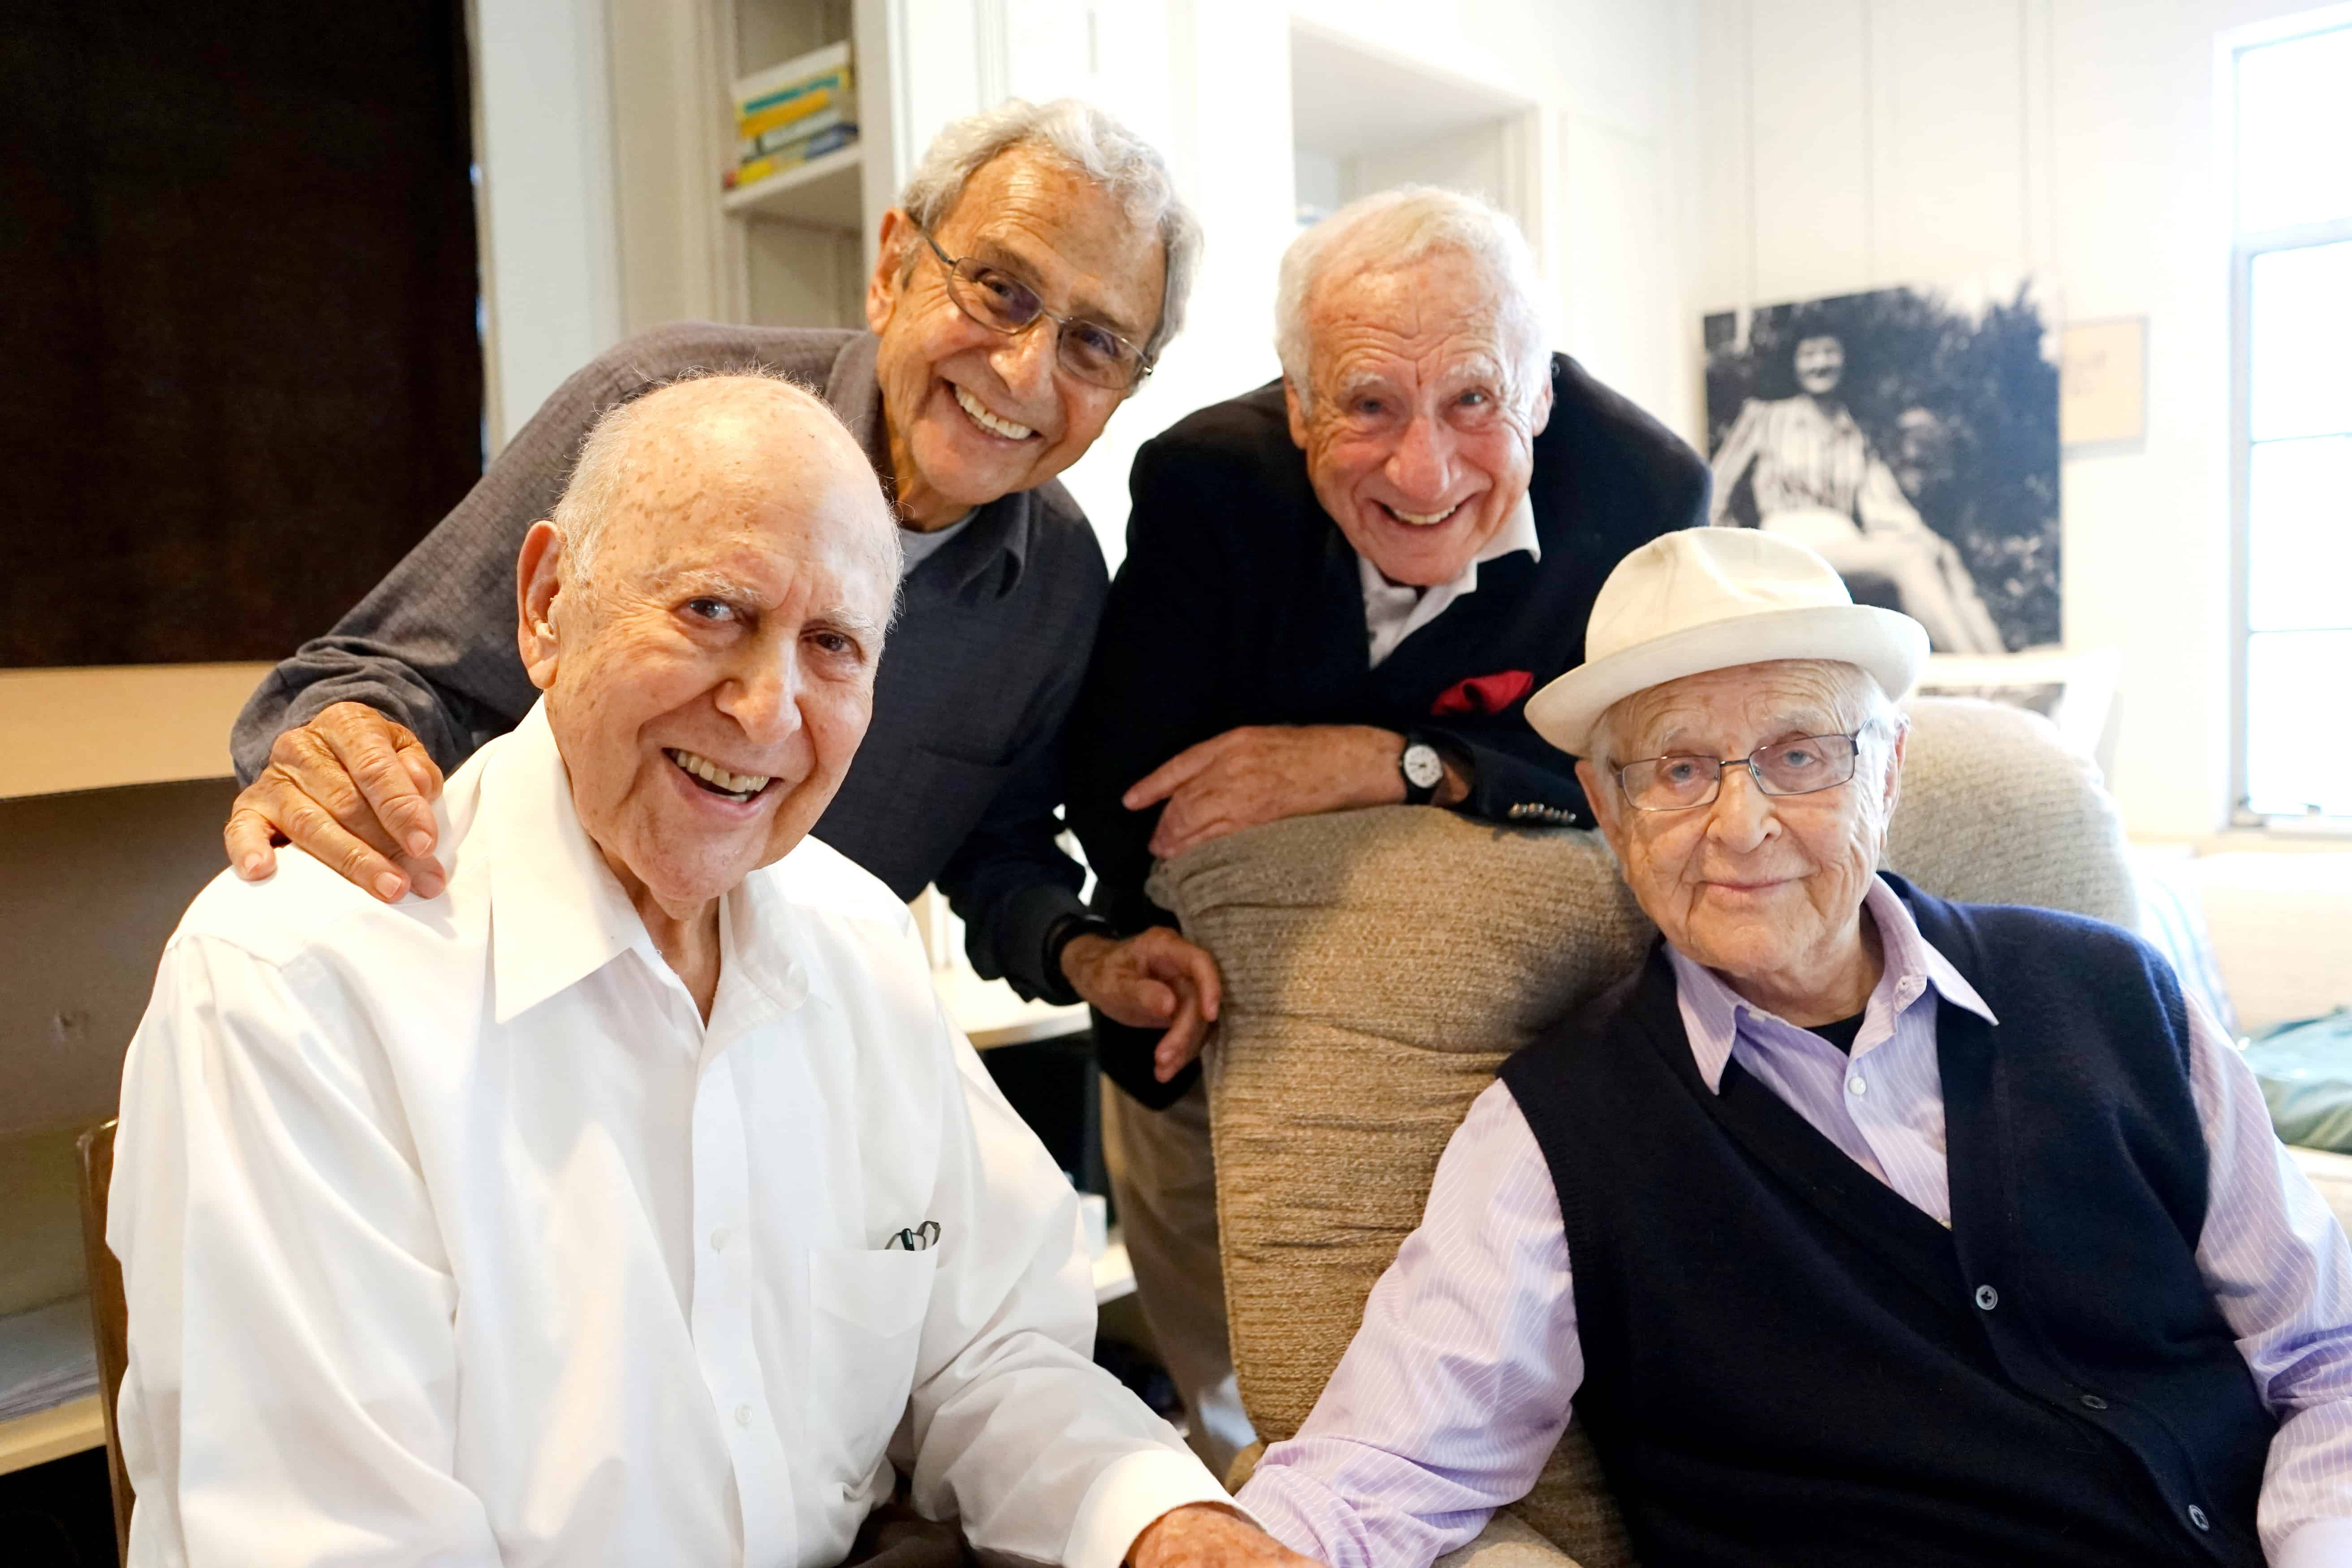 Carl Reiner, front left, with George Shapiro, Mel Brooks, and Norman Lear who appear in If You_re Not in the Obit, Eat Breakfast - Courtesy of HBO